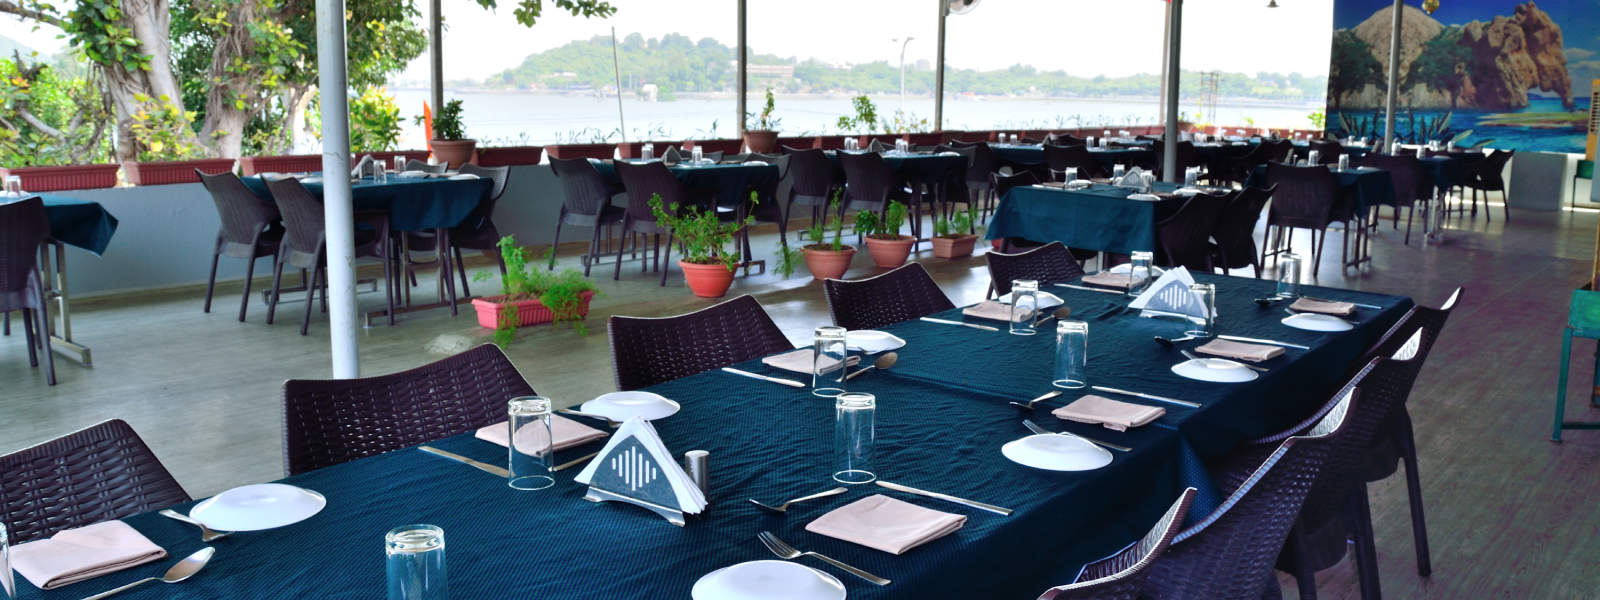 Lake Attached Multi Cuisine Restaurant Udaipur